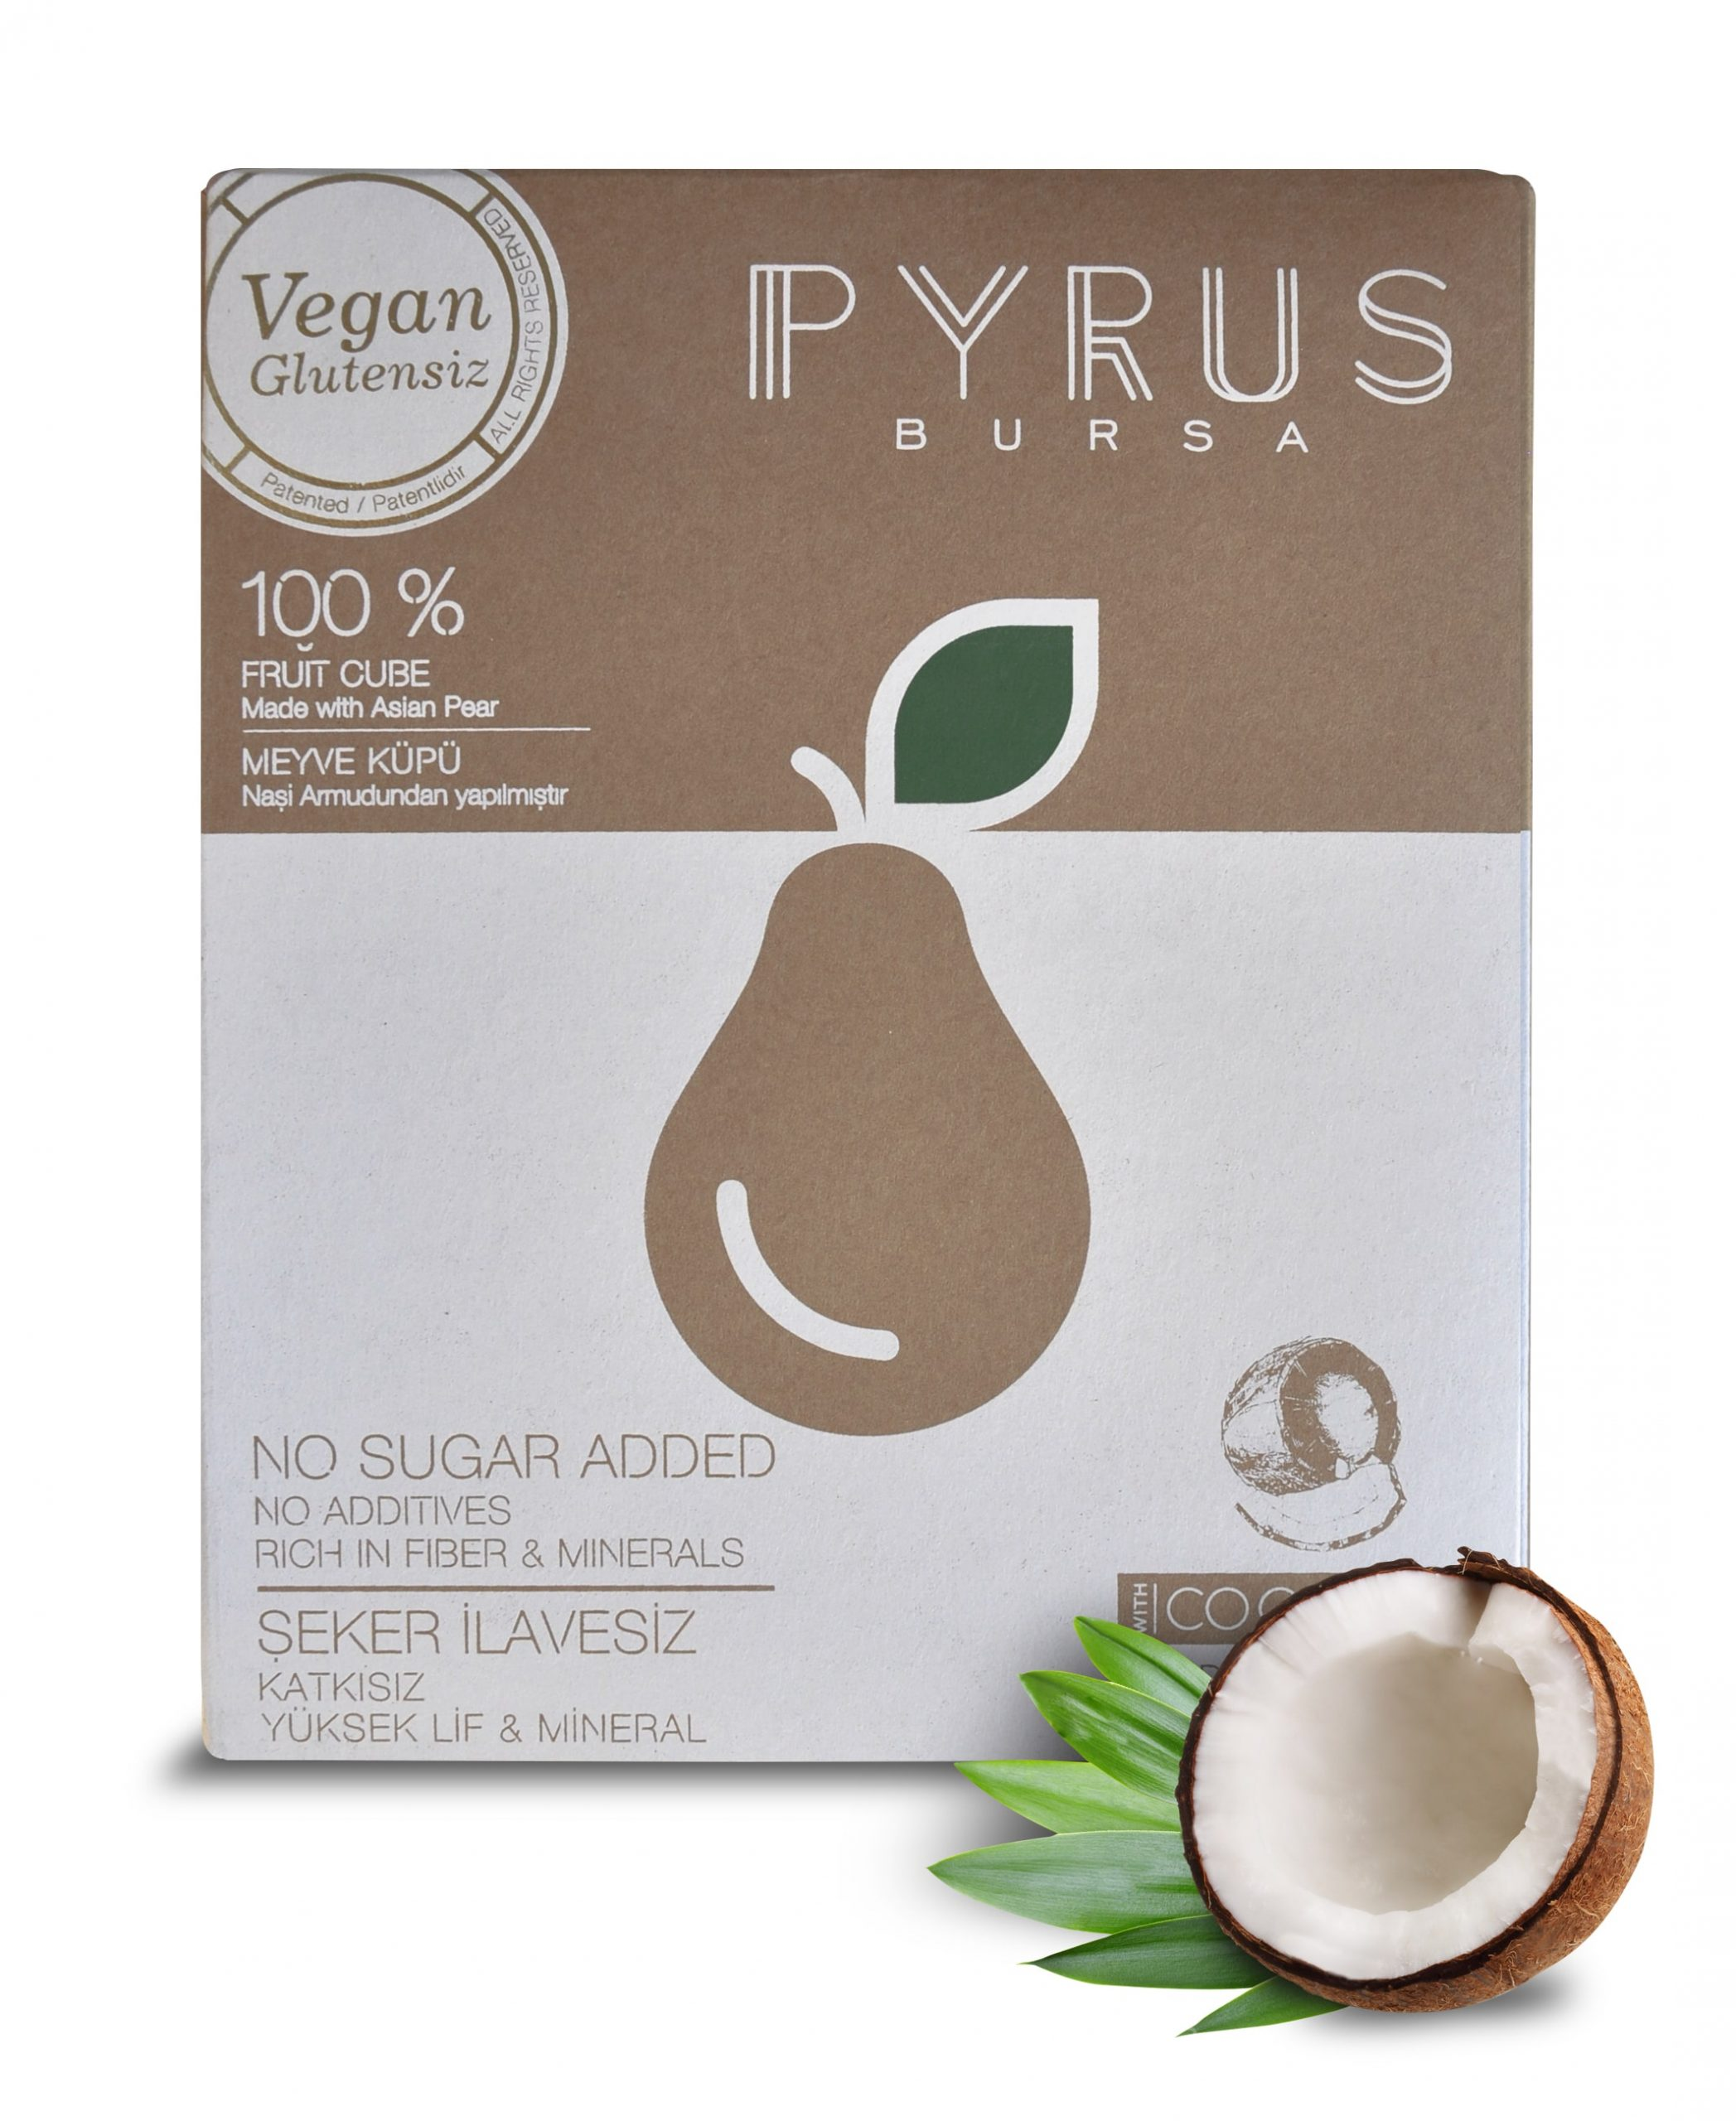 PYRUS 100% Natural Fruit Cube Delights with Coconut Flavour